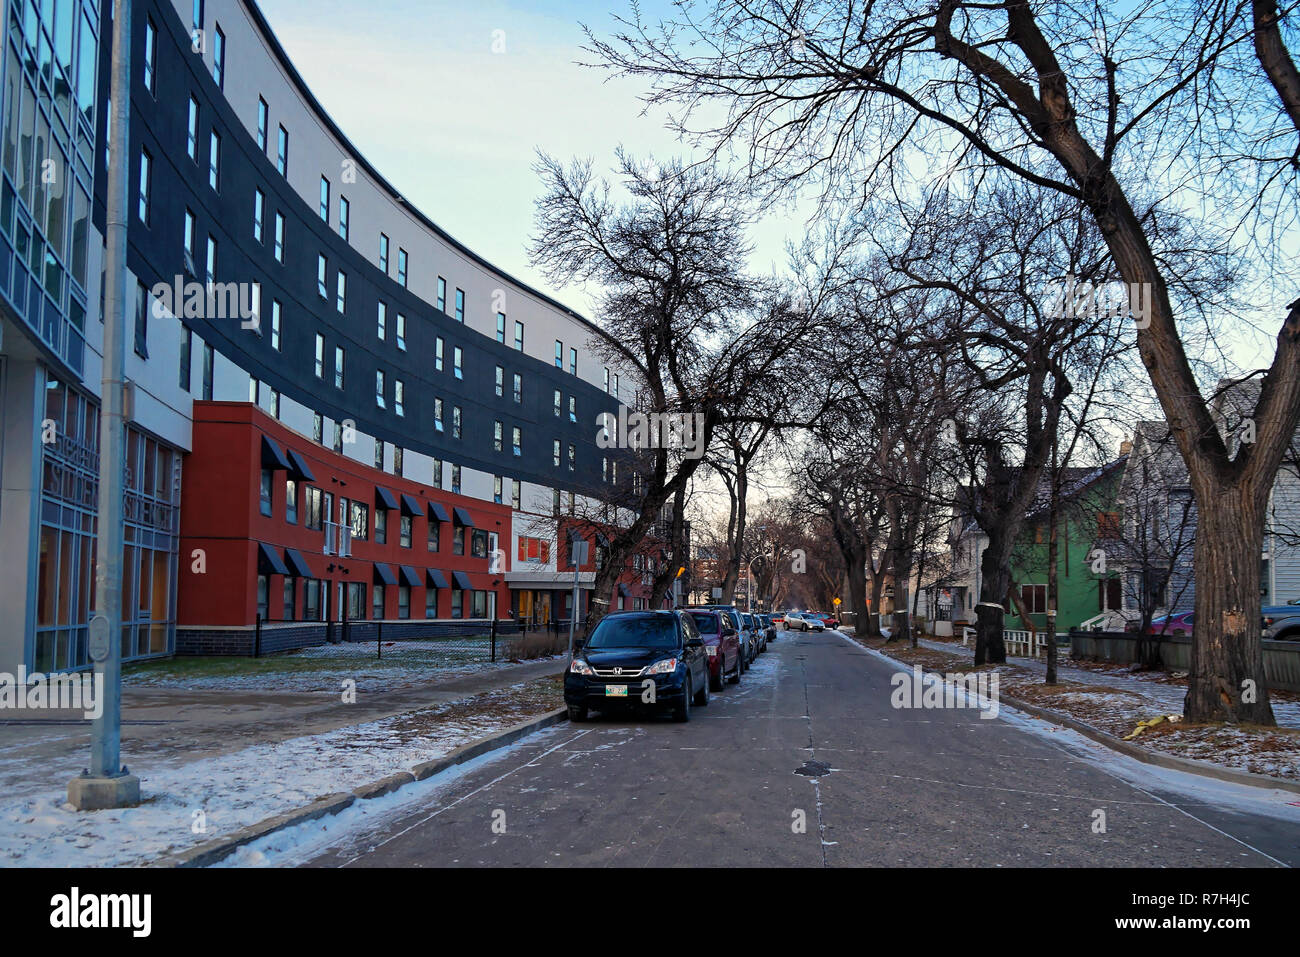 Winnipeg, Manitoba, Canada - 2014 11 16: Langside street view with a student residence in the left. Built on UWinnipeg's western Furby-Langside Campus - Stock Image